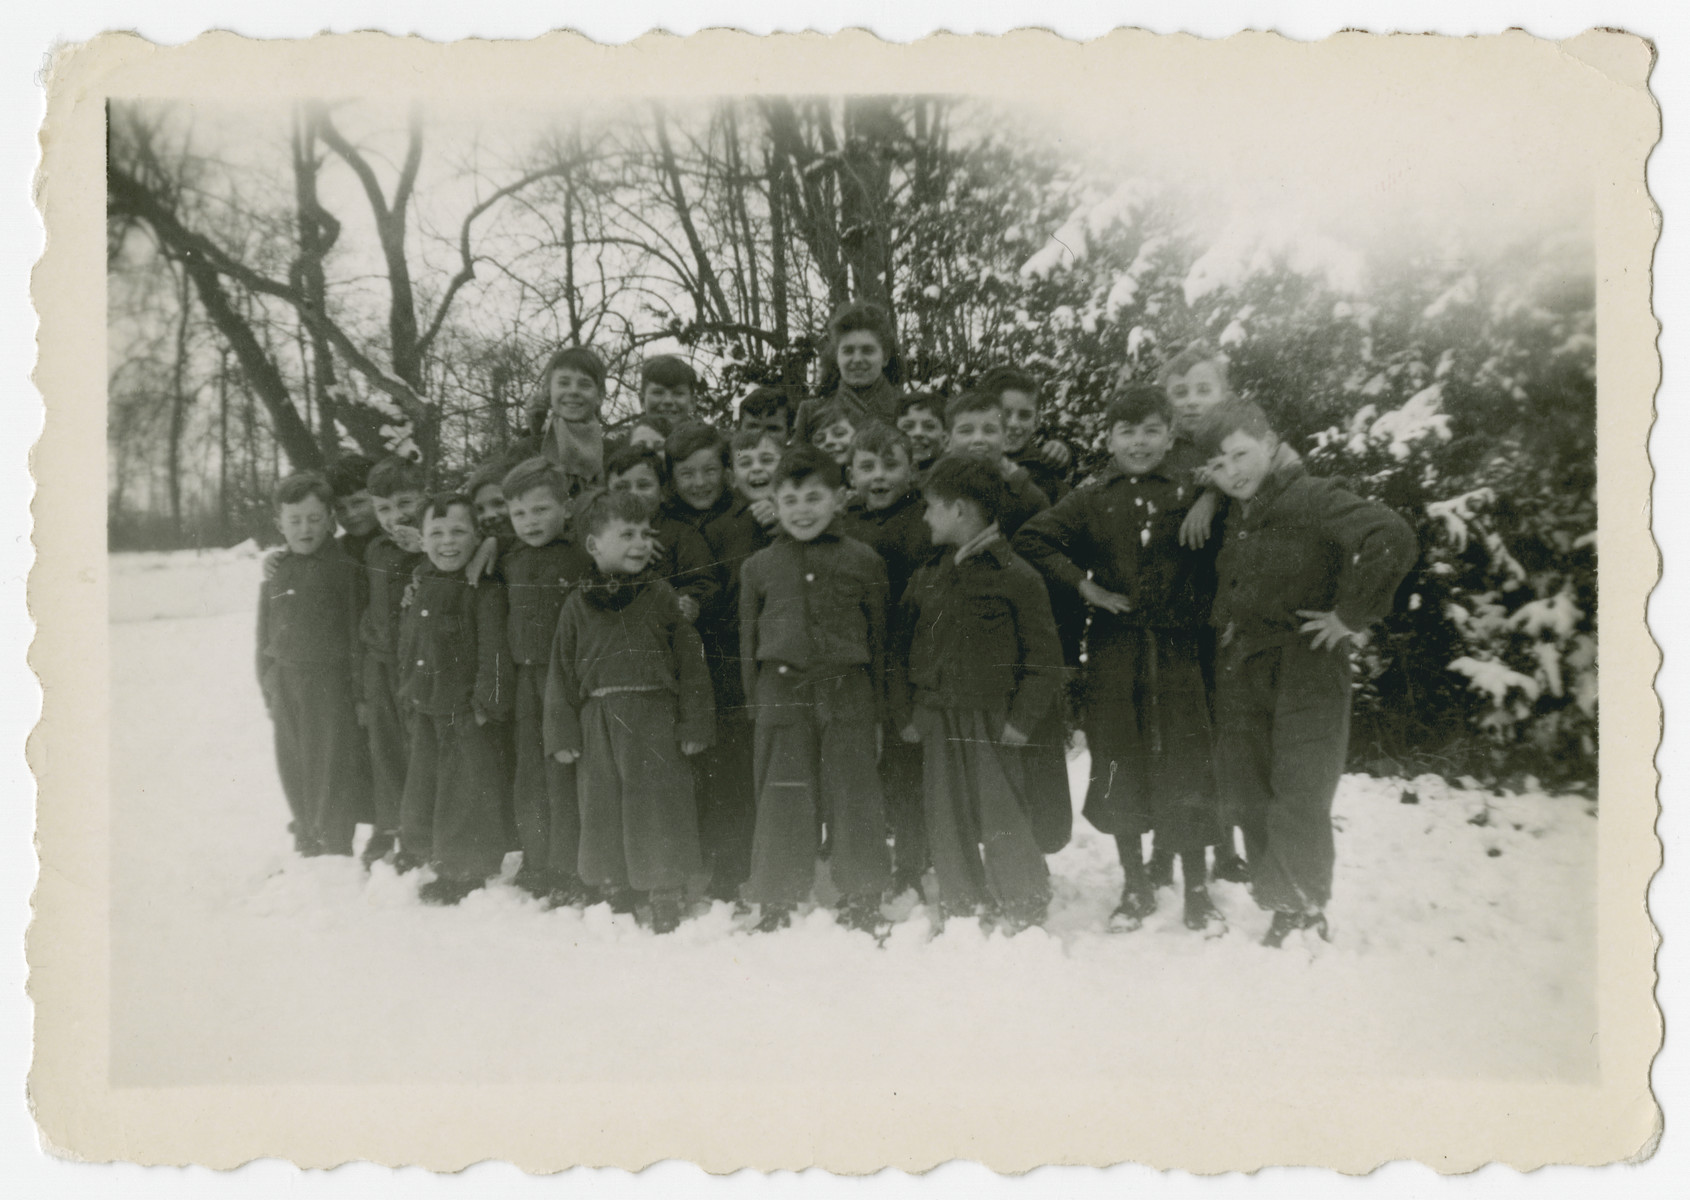 Elementary school boys, many of them Jewish children in hiding, pose in the snow outside the Chateau de  Beloeil.